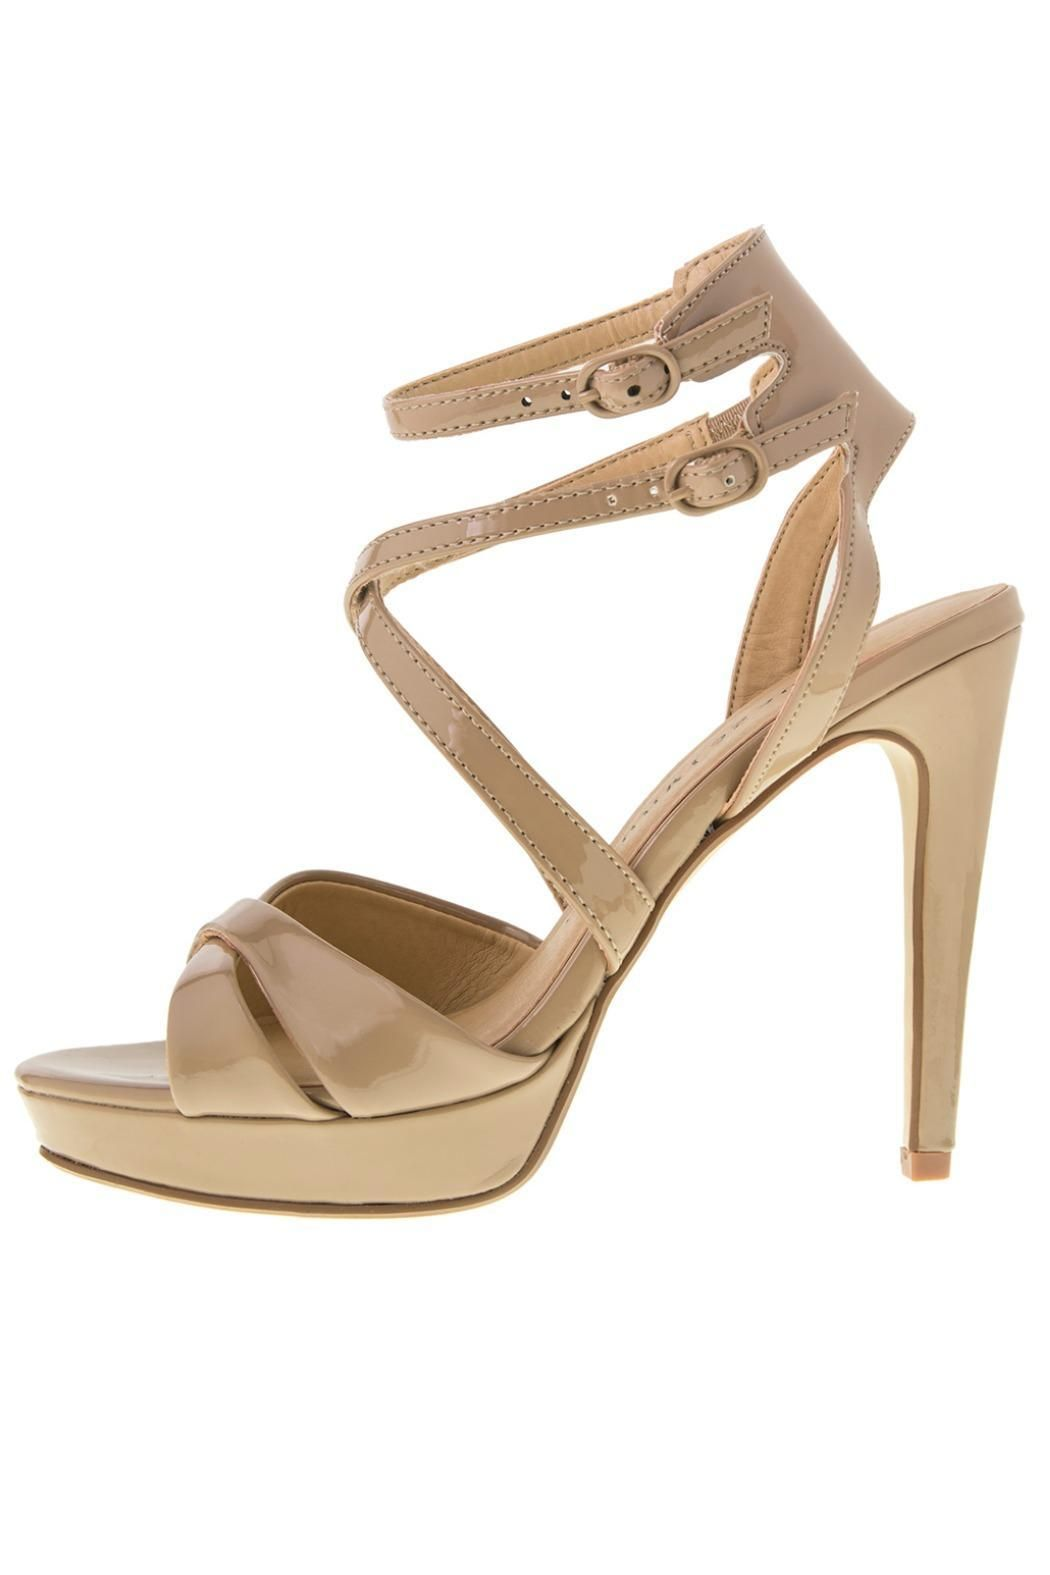 The Highlight platform sandals feature overlapping criss-cross straps and  dual adjustable ankle straps to aa0764f3d951